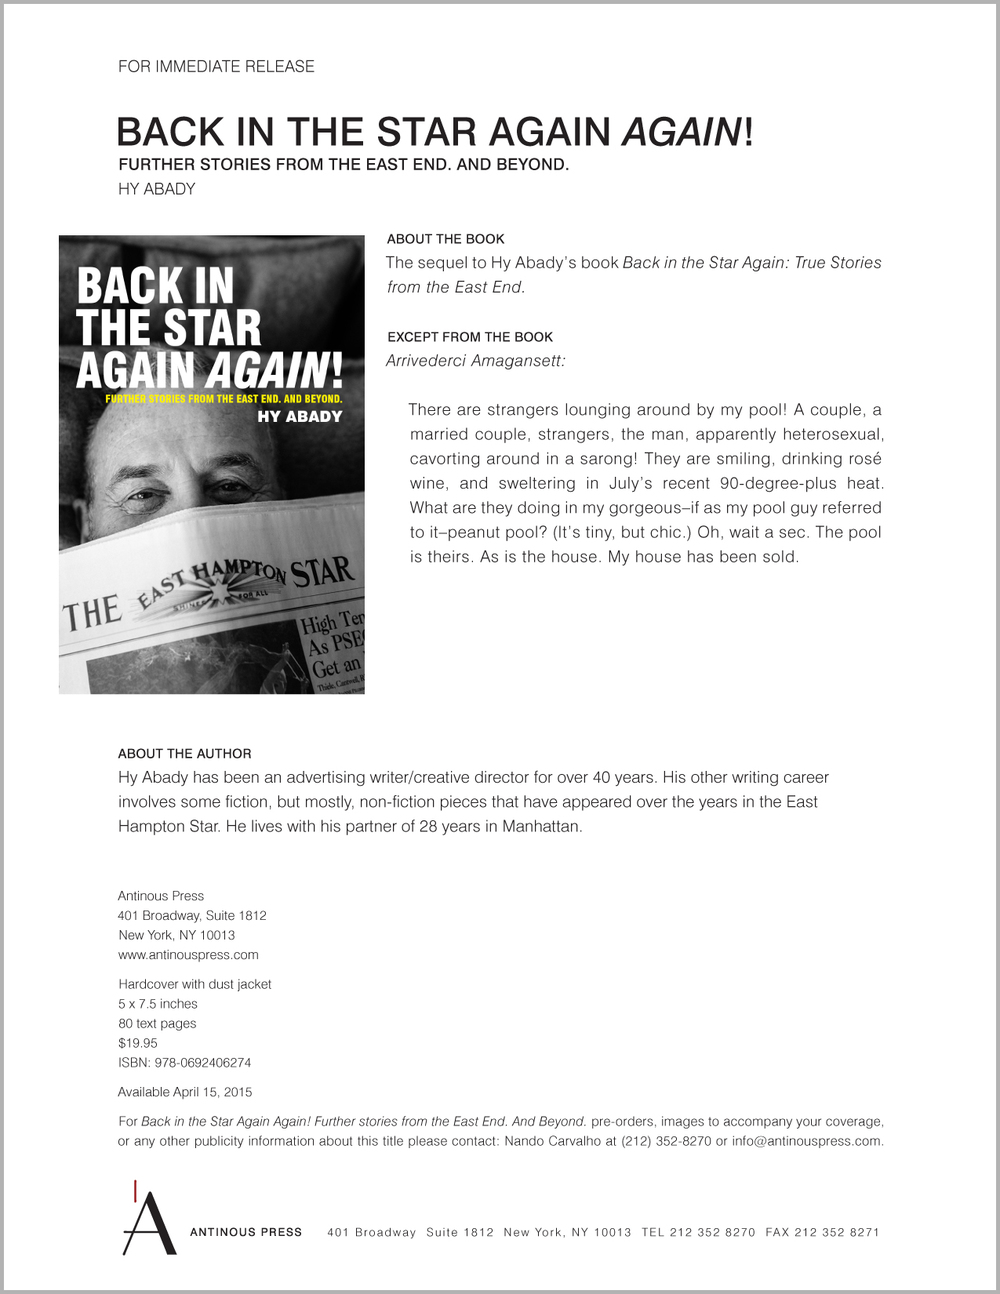 April 15, 2015  Download the press release for  Back in the Star Again Again! Further Stories from the East End. And Beyond.  by Hy Abady.